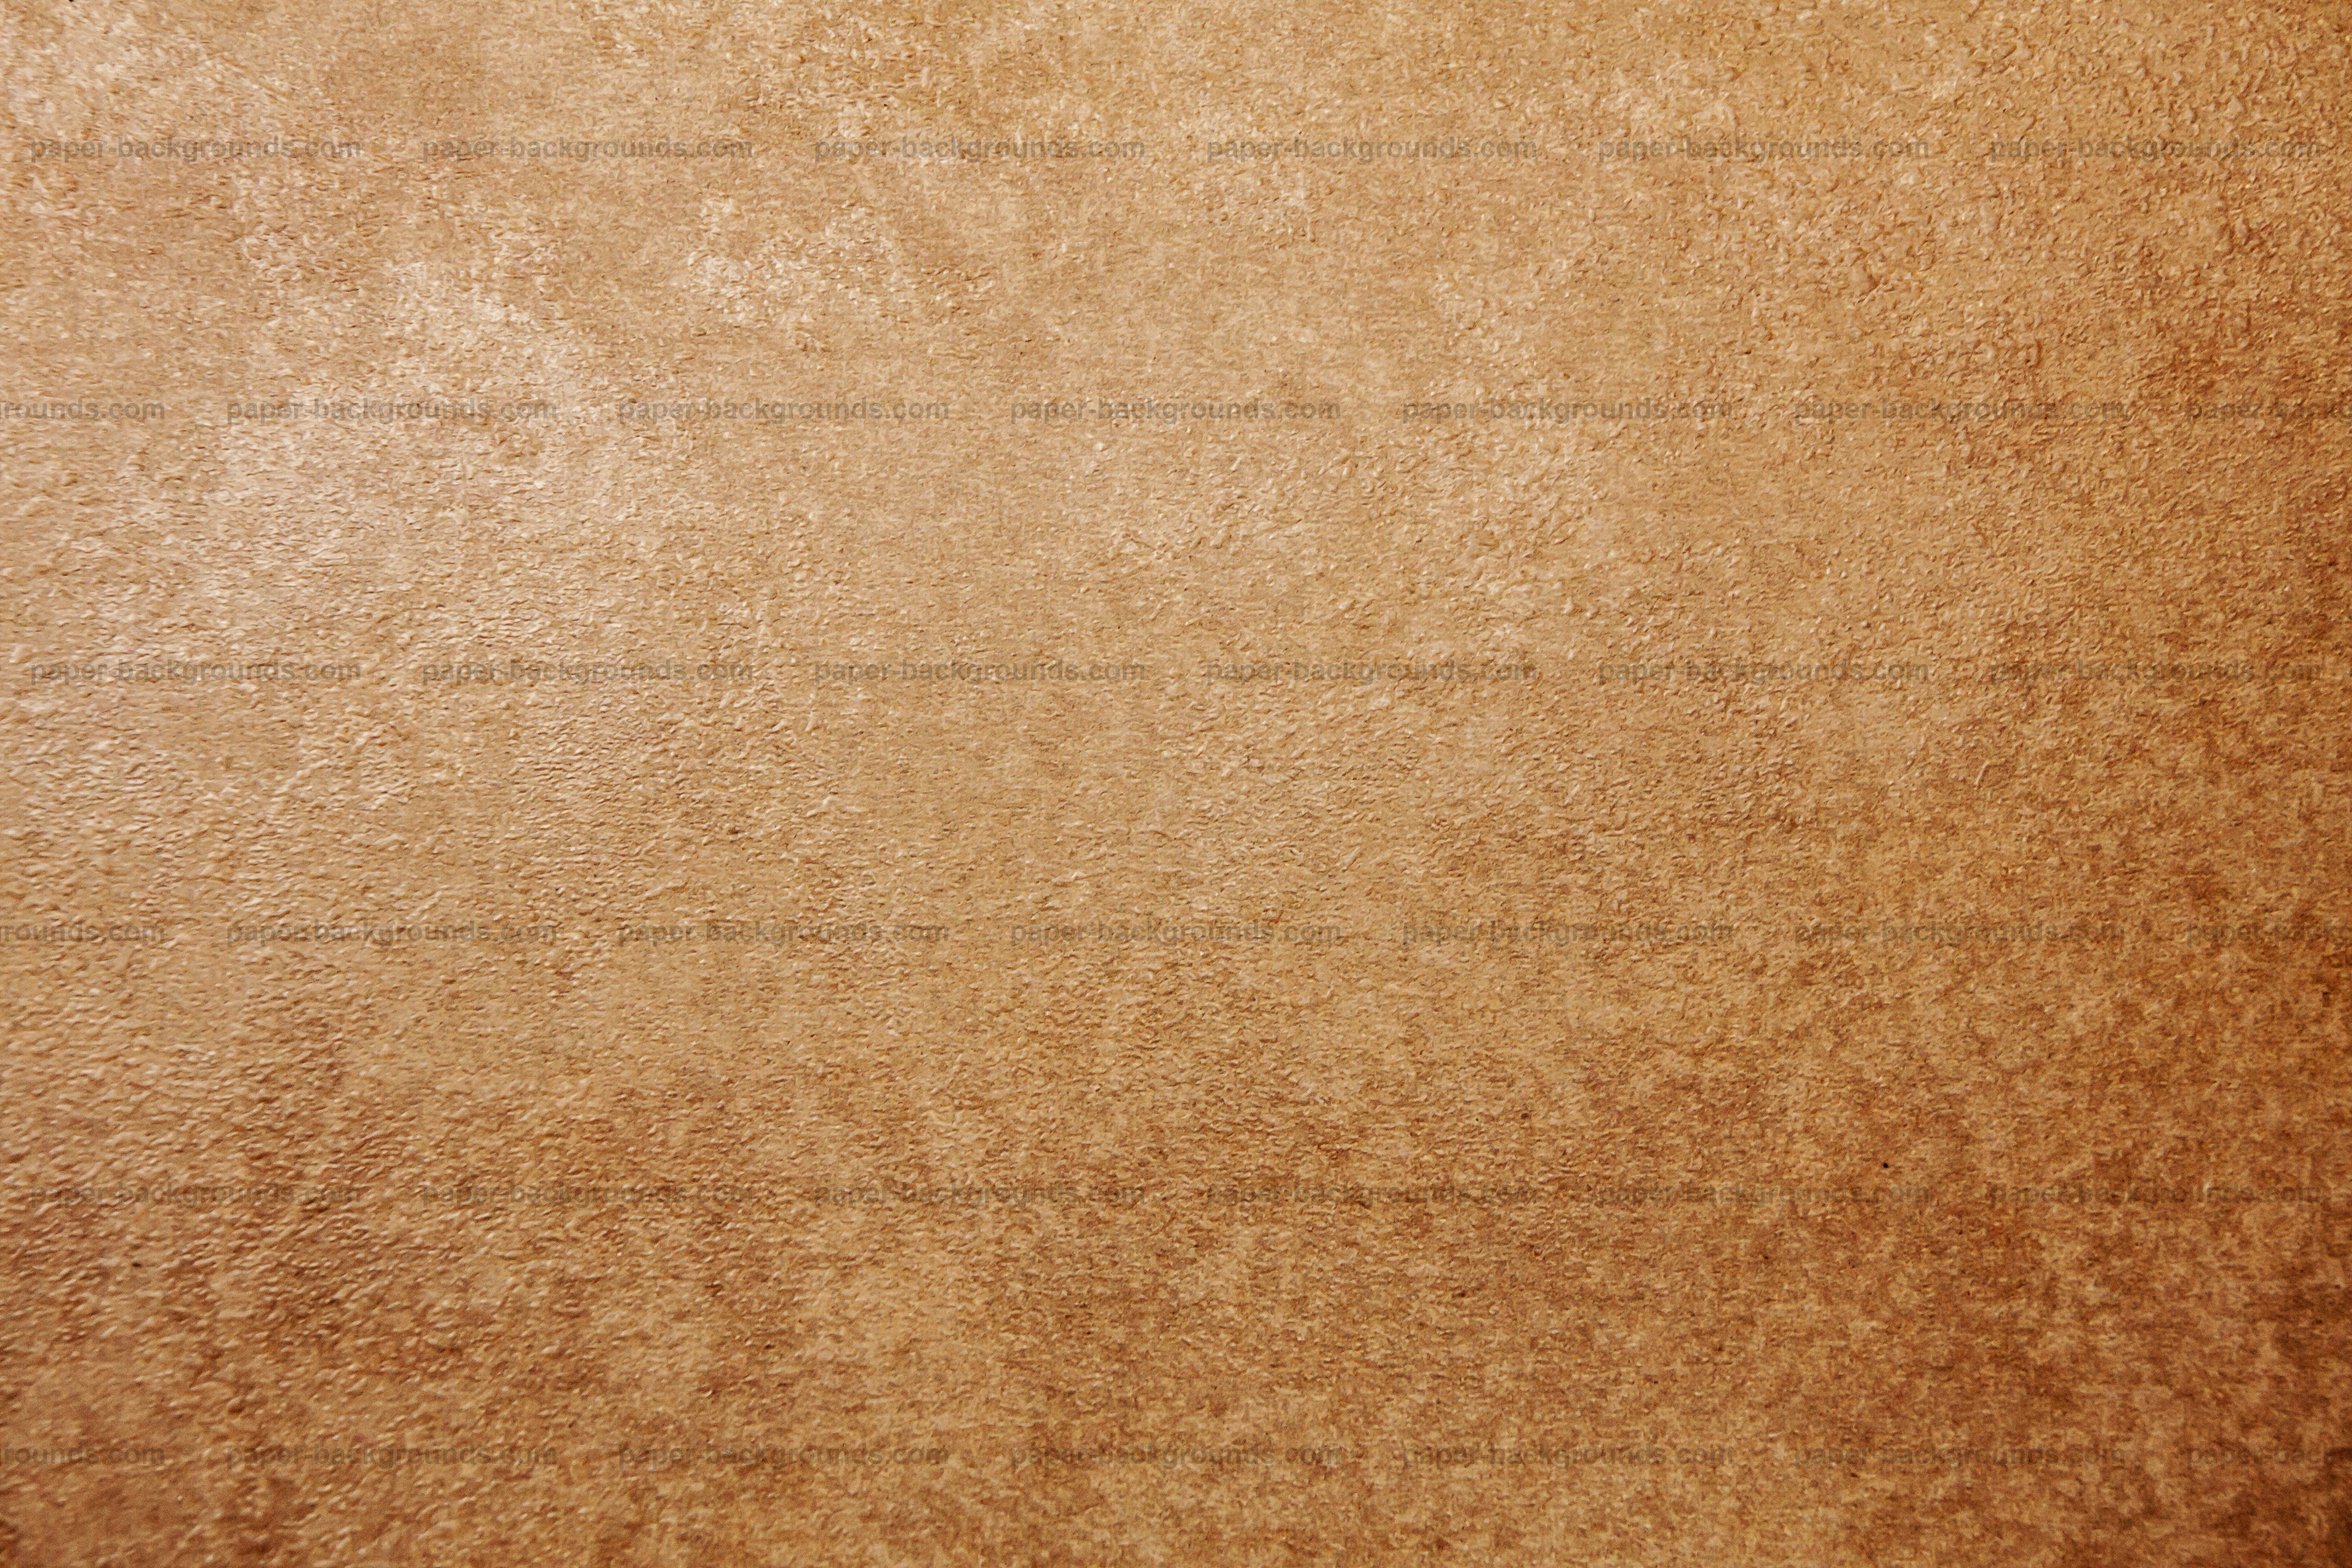 Paper Backgrounds Brown Wall Texture Vintage Background 3888x2592